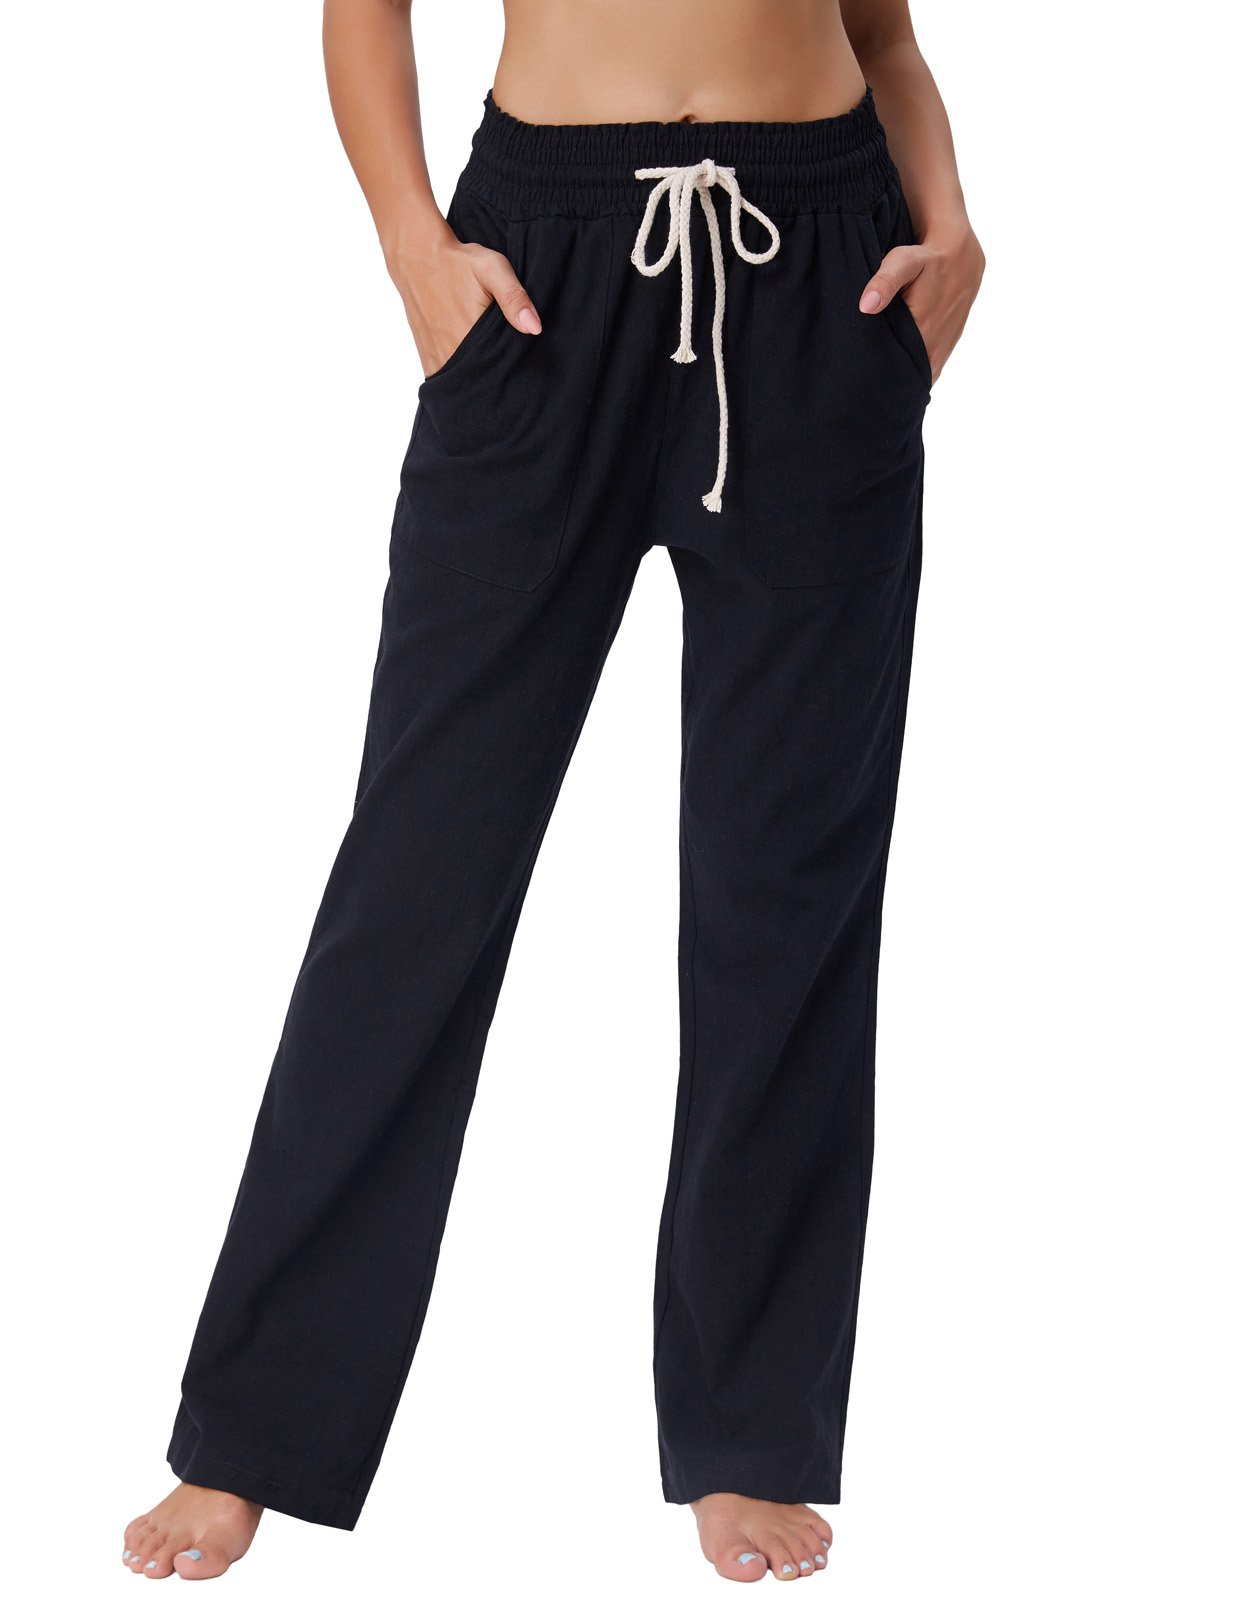 GRACE KARIN Women's Casual Cotton Pants with Drawstring Size S Black